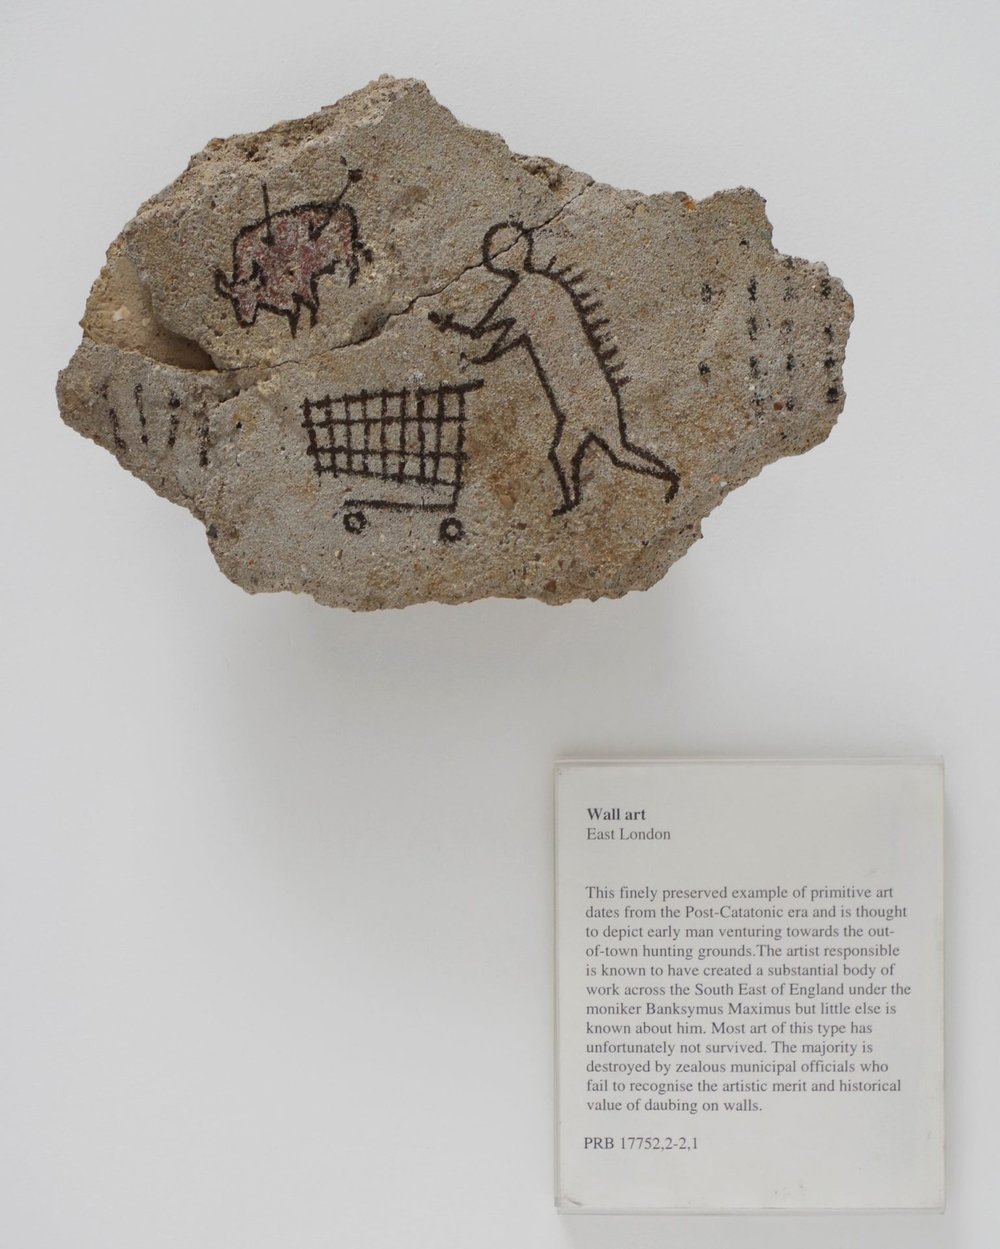 Banksy,  Peckham Rock  (2005). The piece was secretly installed at the British Museum in 2005 and went undetected for days. Photo courtesy of Banksy and Pest Control.